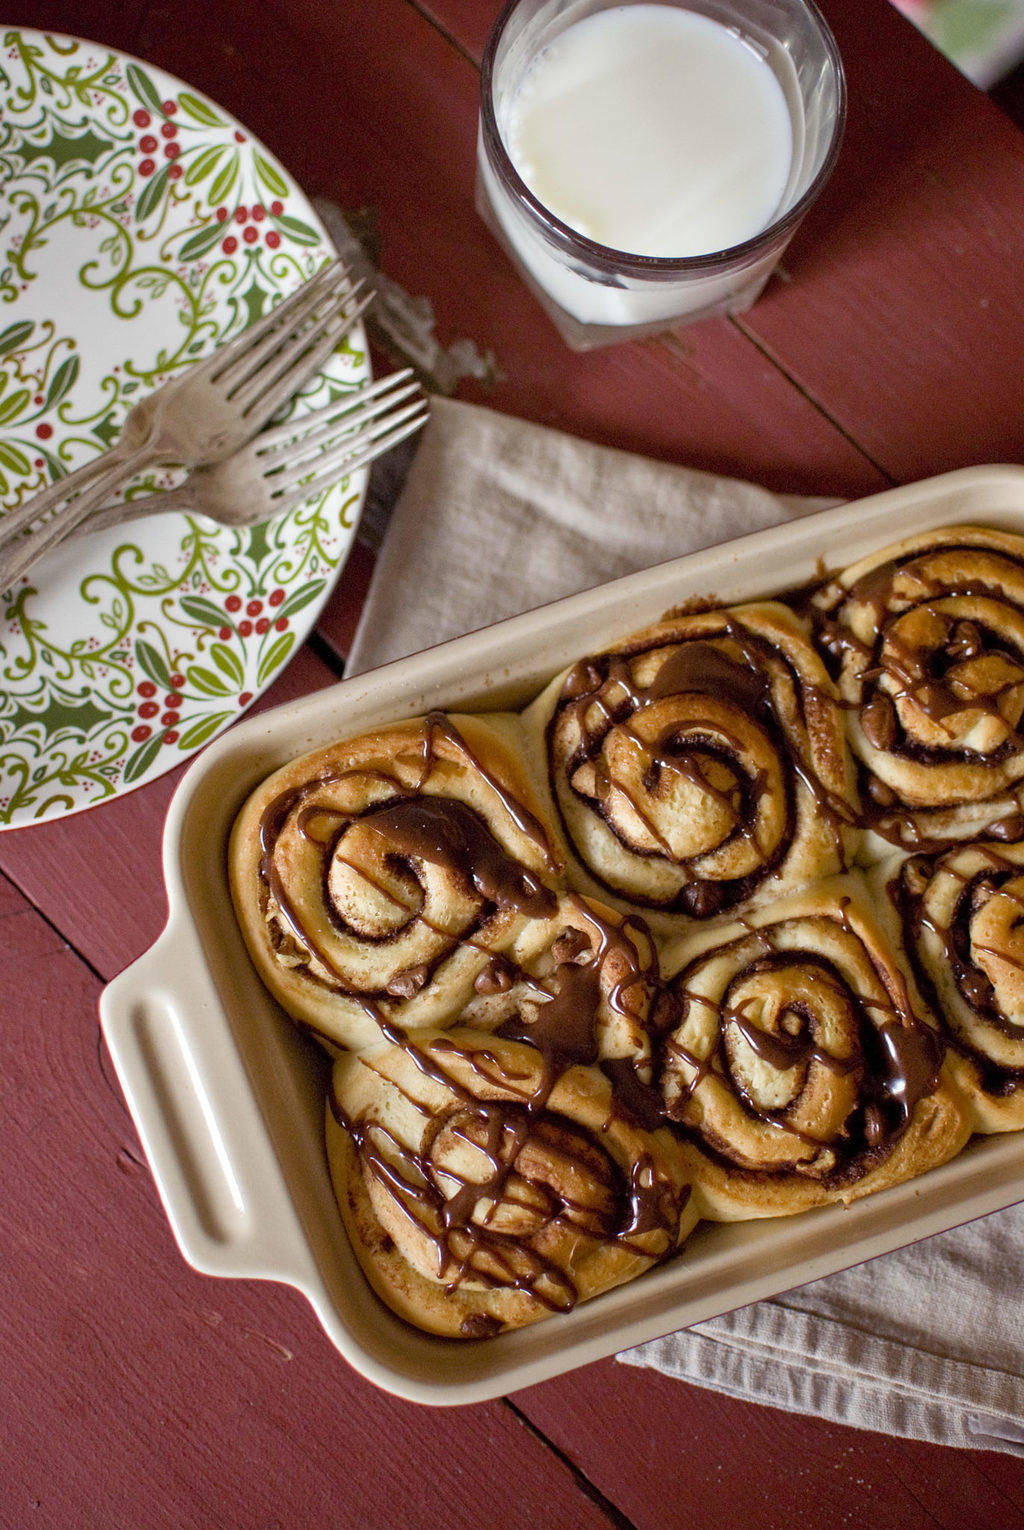 Walnut Chocolate Chip Yeast Rolls